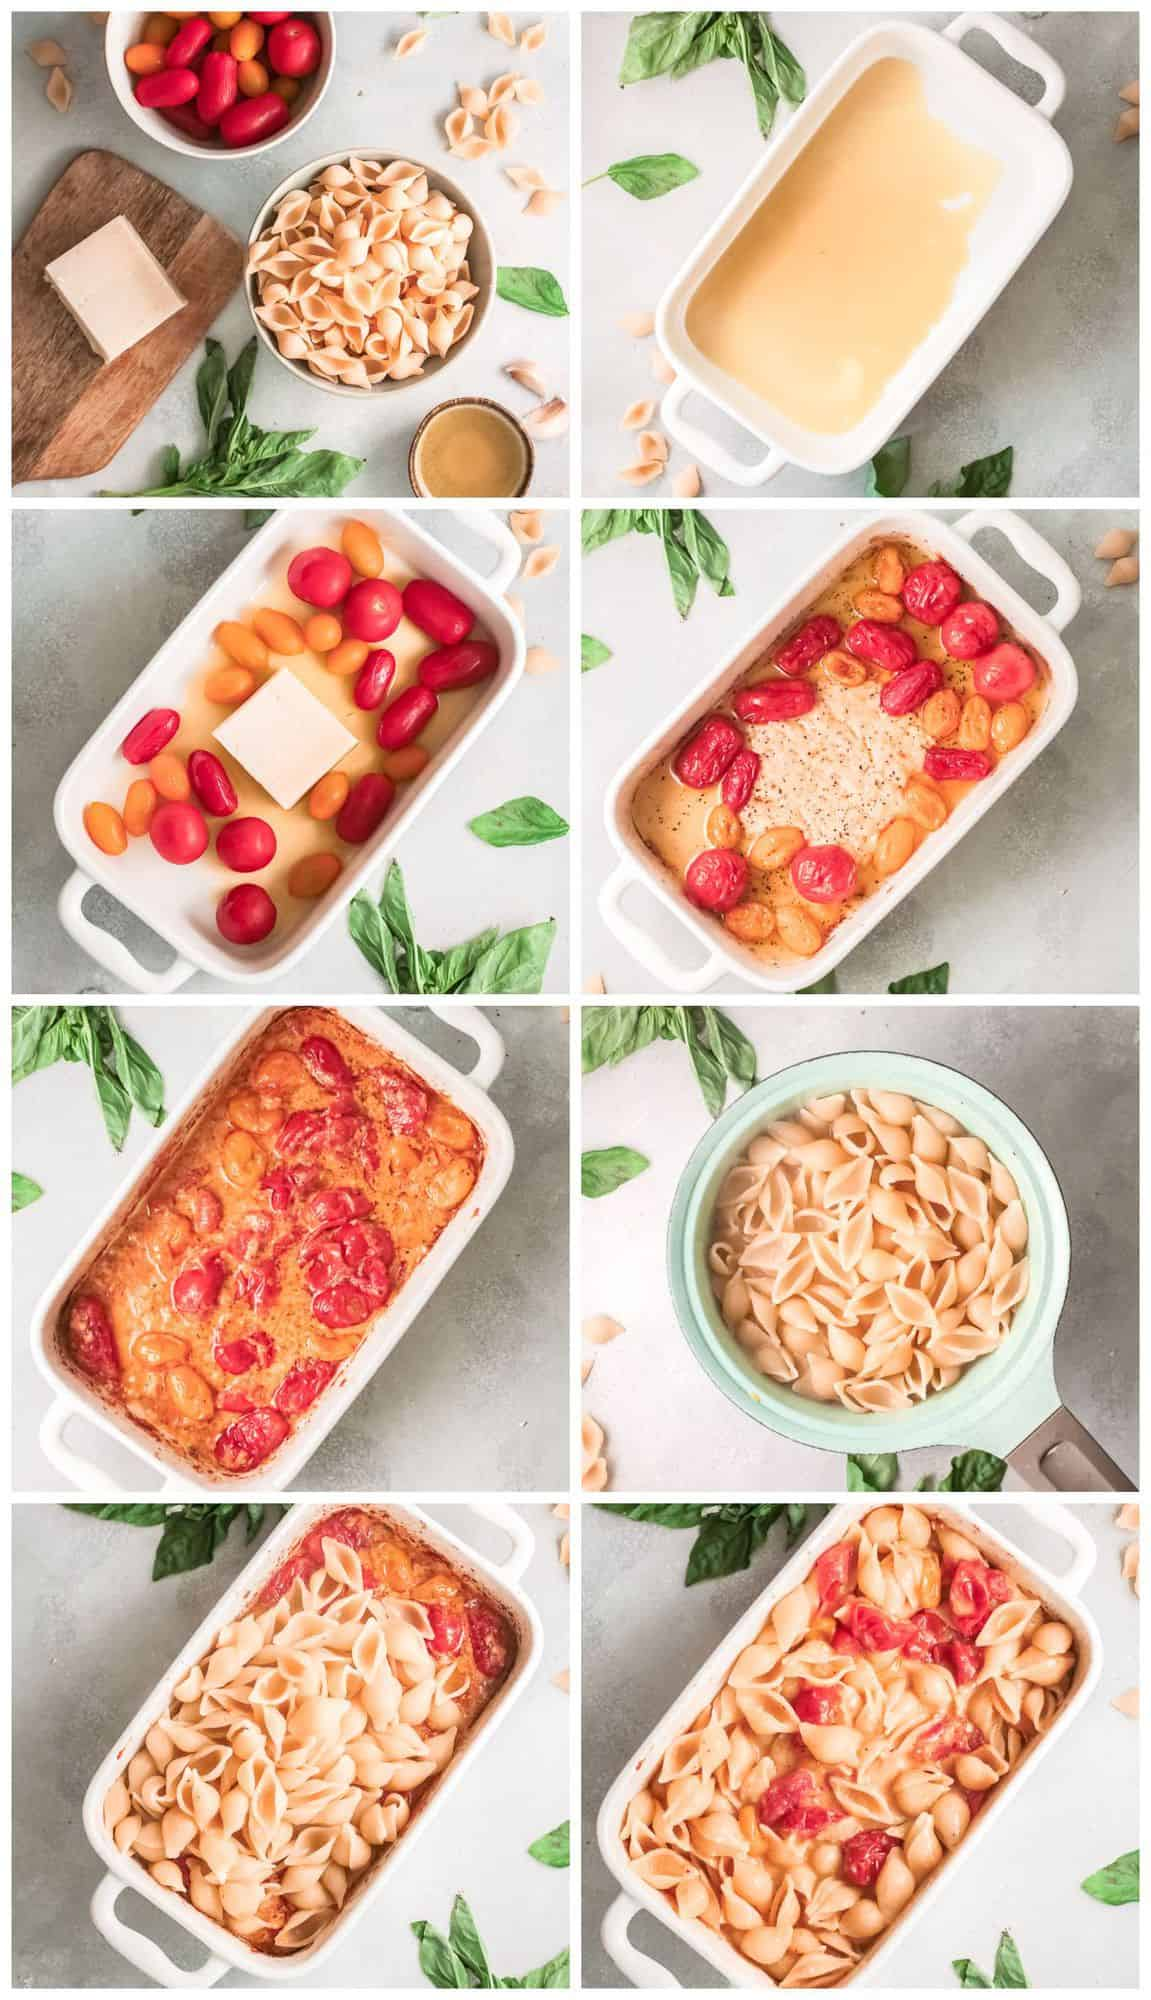 step by step photos for how to make baked parmesan pasta